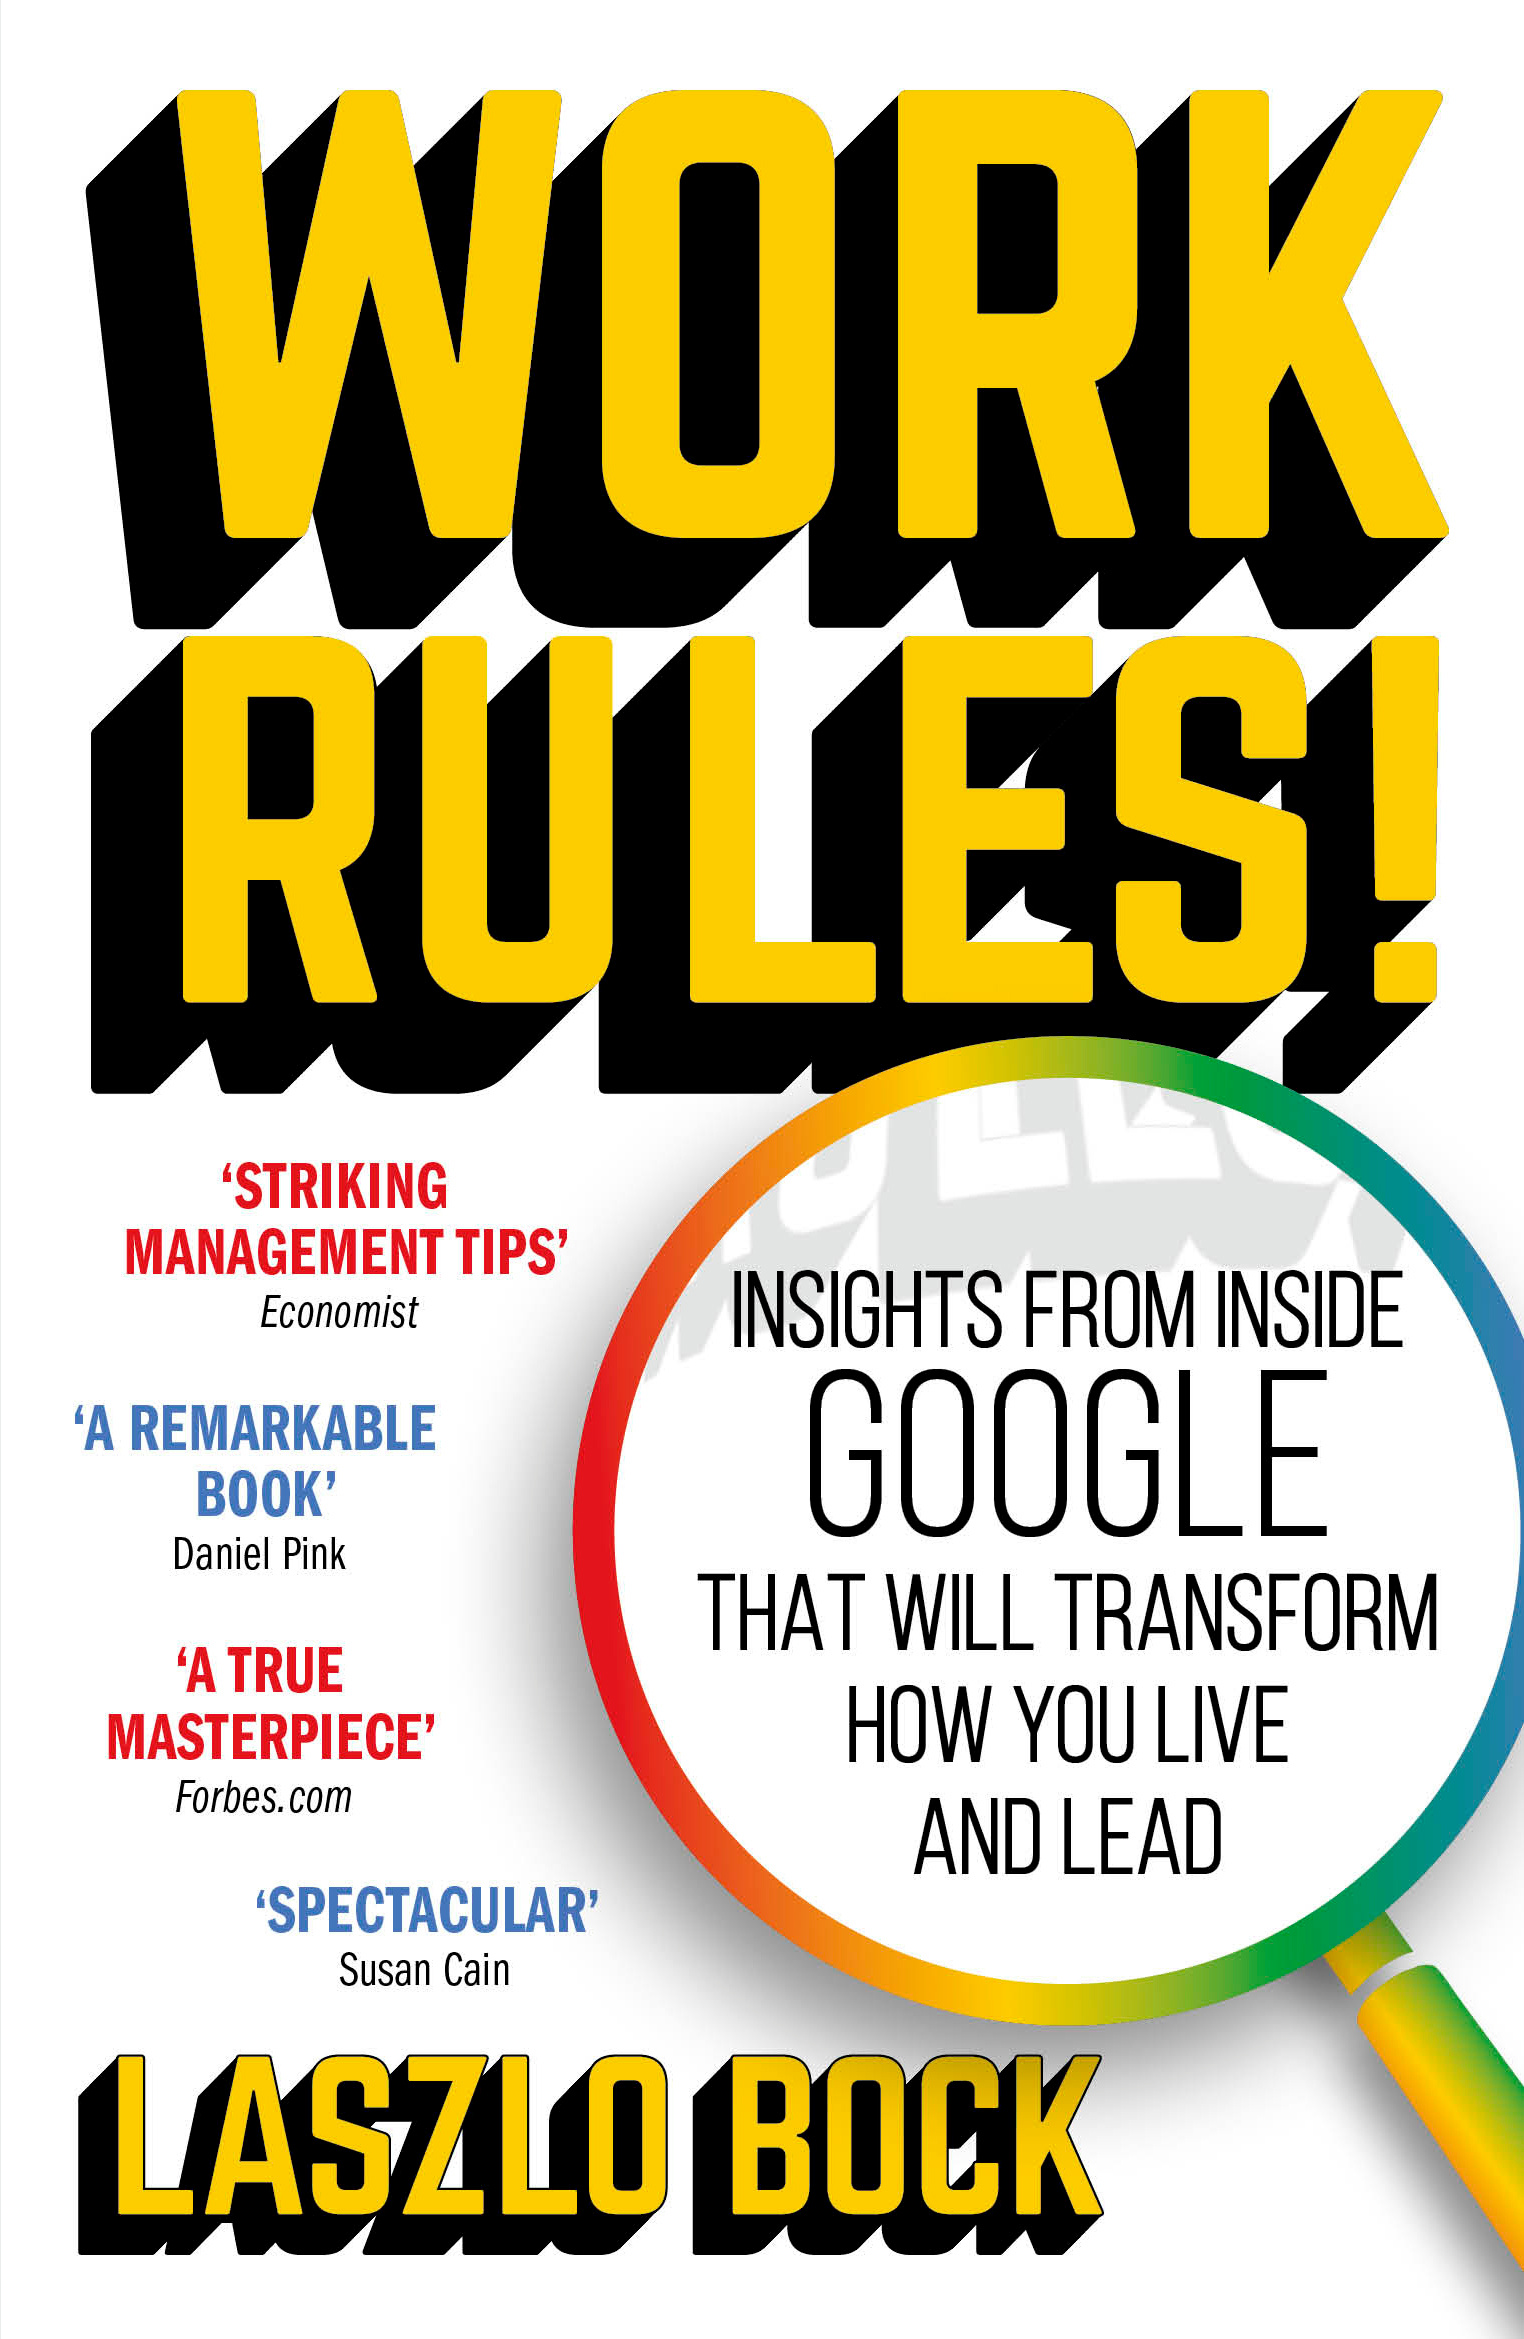 Insights from Inside Google That Will Transform How You Live and Lead Work Rules!